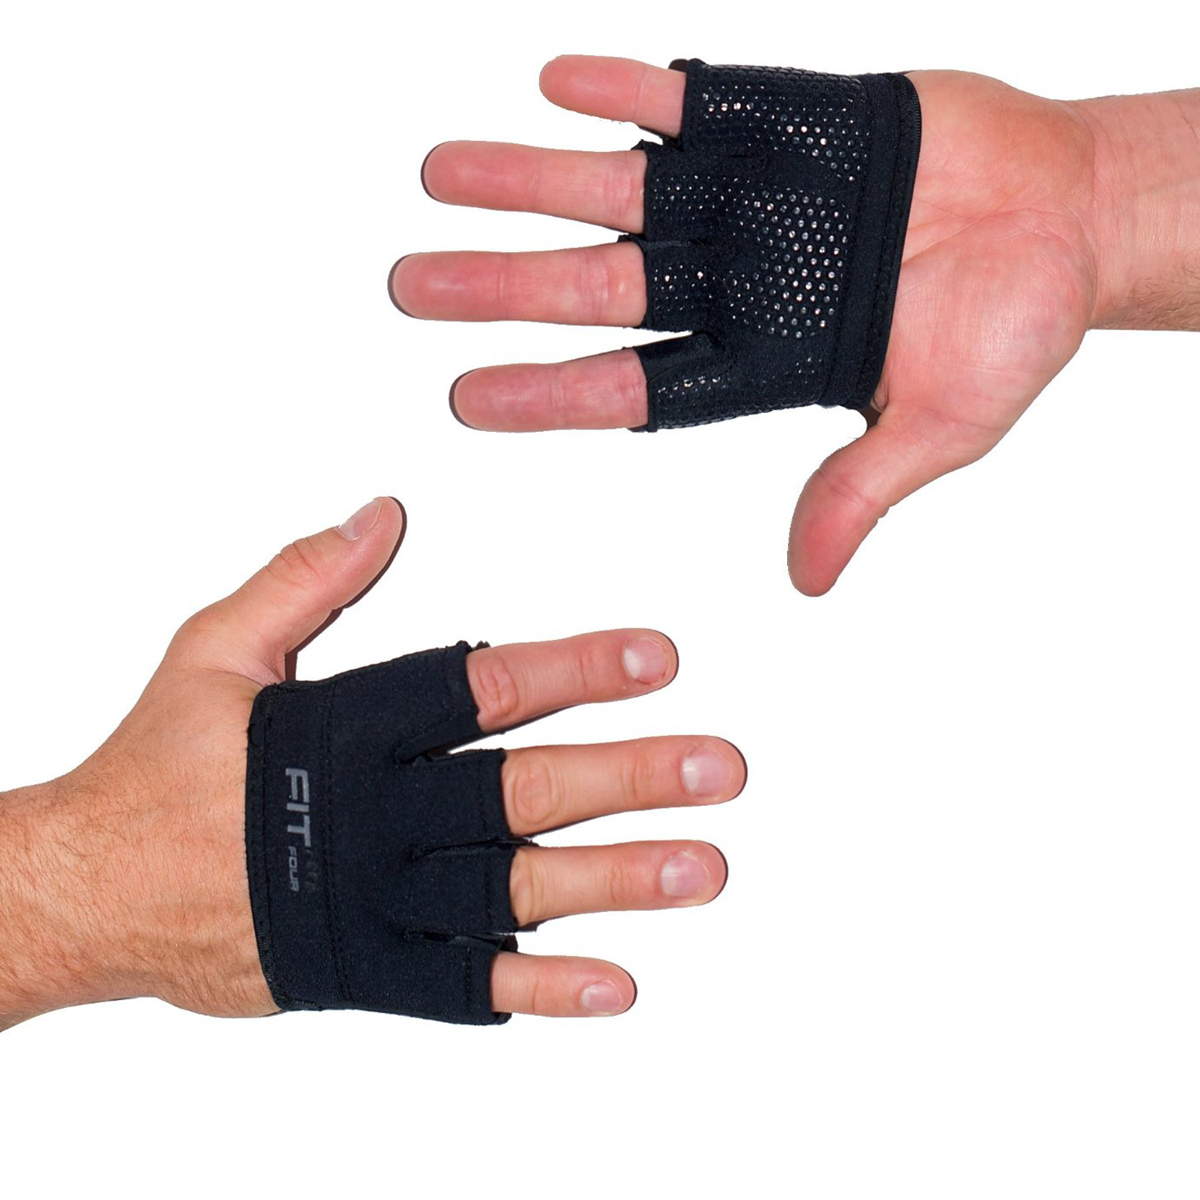 Fitness Weight Lifting Gloves: Fit Four The Neo Grip Fitness Weight Lifting Gloves